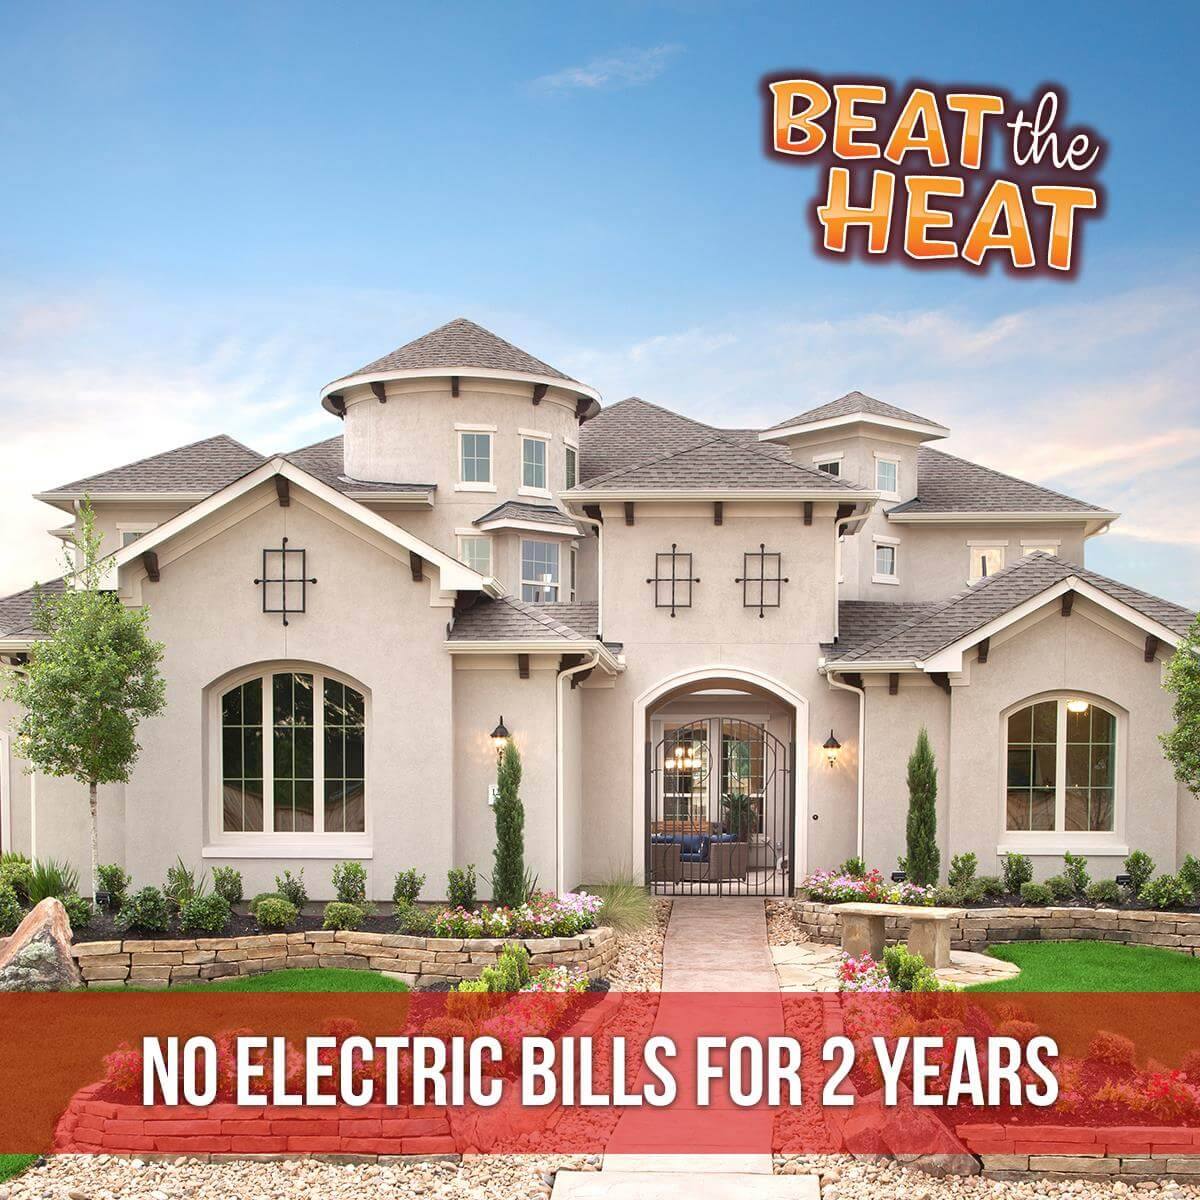 Coventry Homes Re-Launches 'Beat The Heat' Promotion